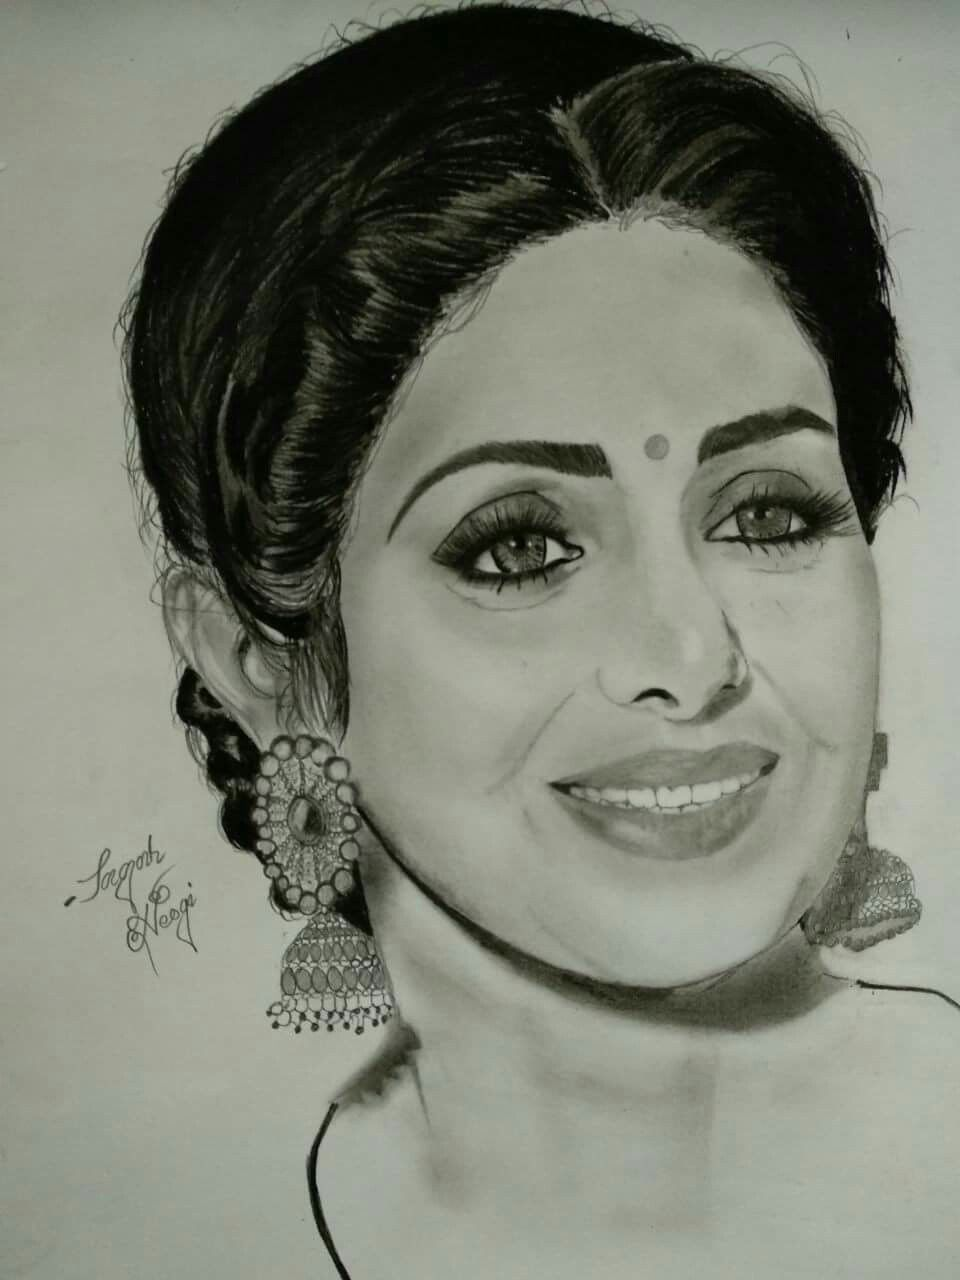 Fan pencil sketch of sridevi ji